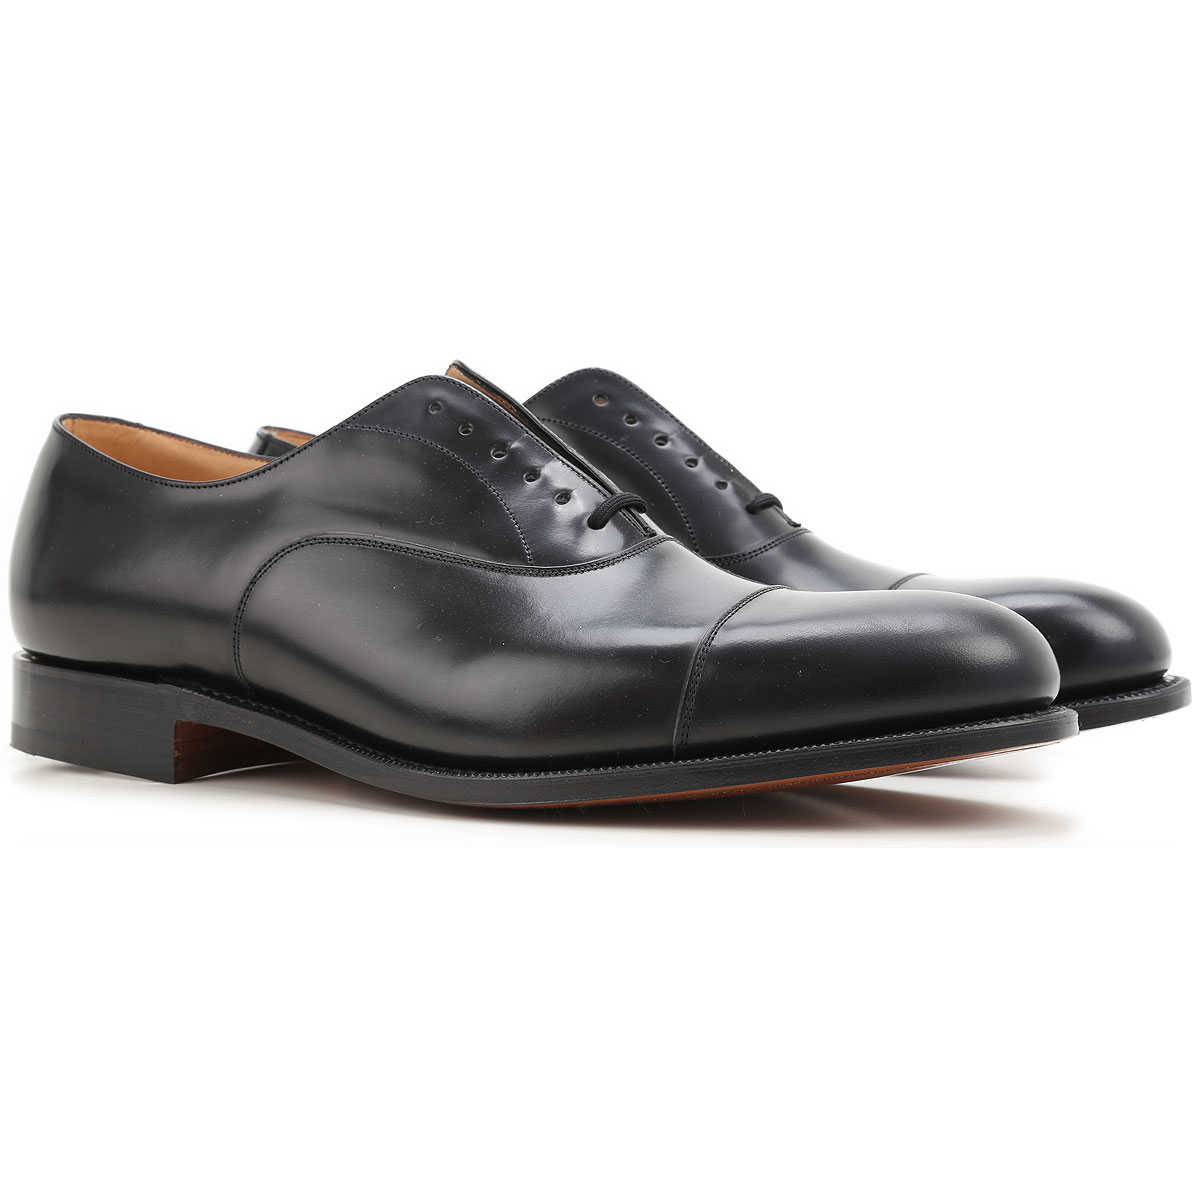 Church's Lace Up Shoes for Men Oxfords Derbies and Brogues SE - GOOFASH